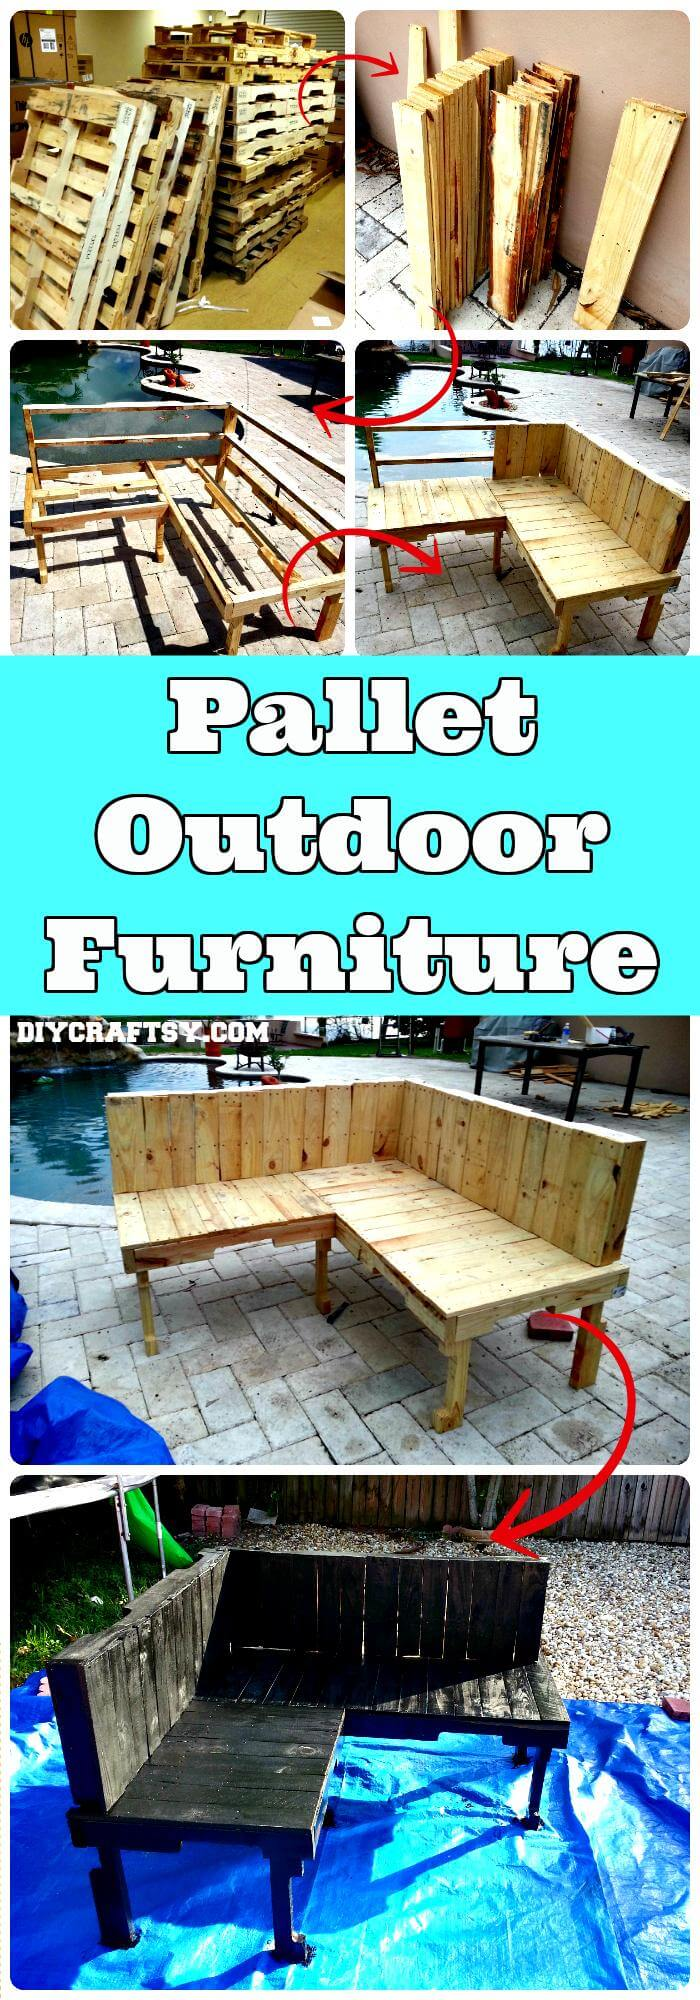 how to build outdoor furniture with pallets